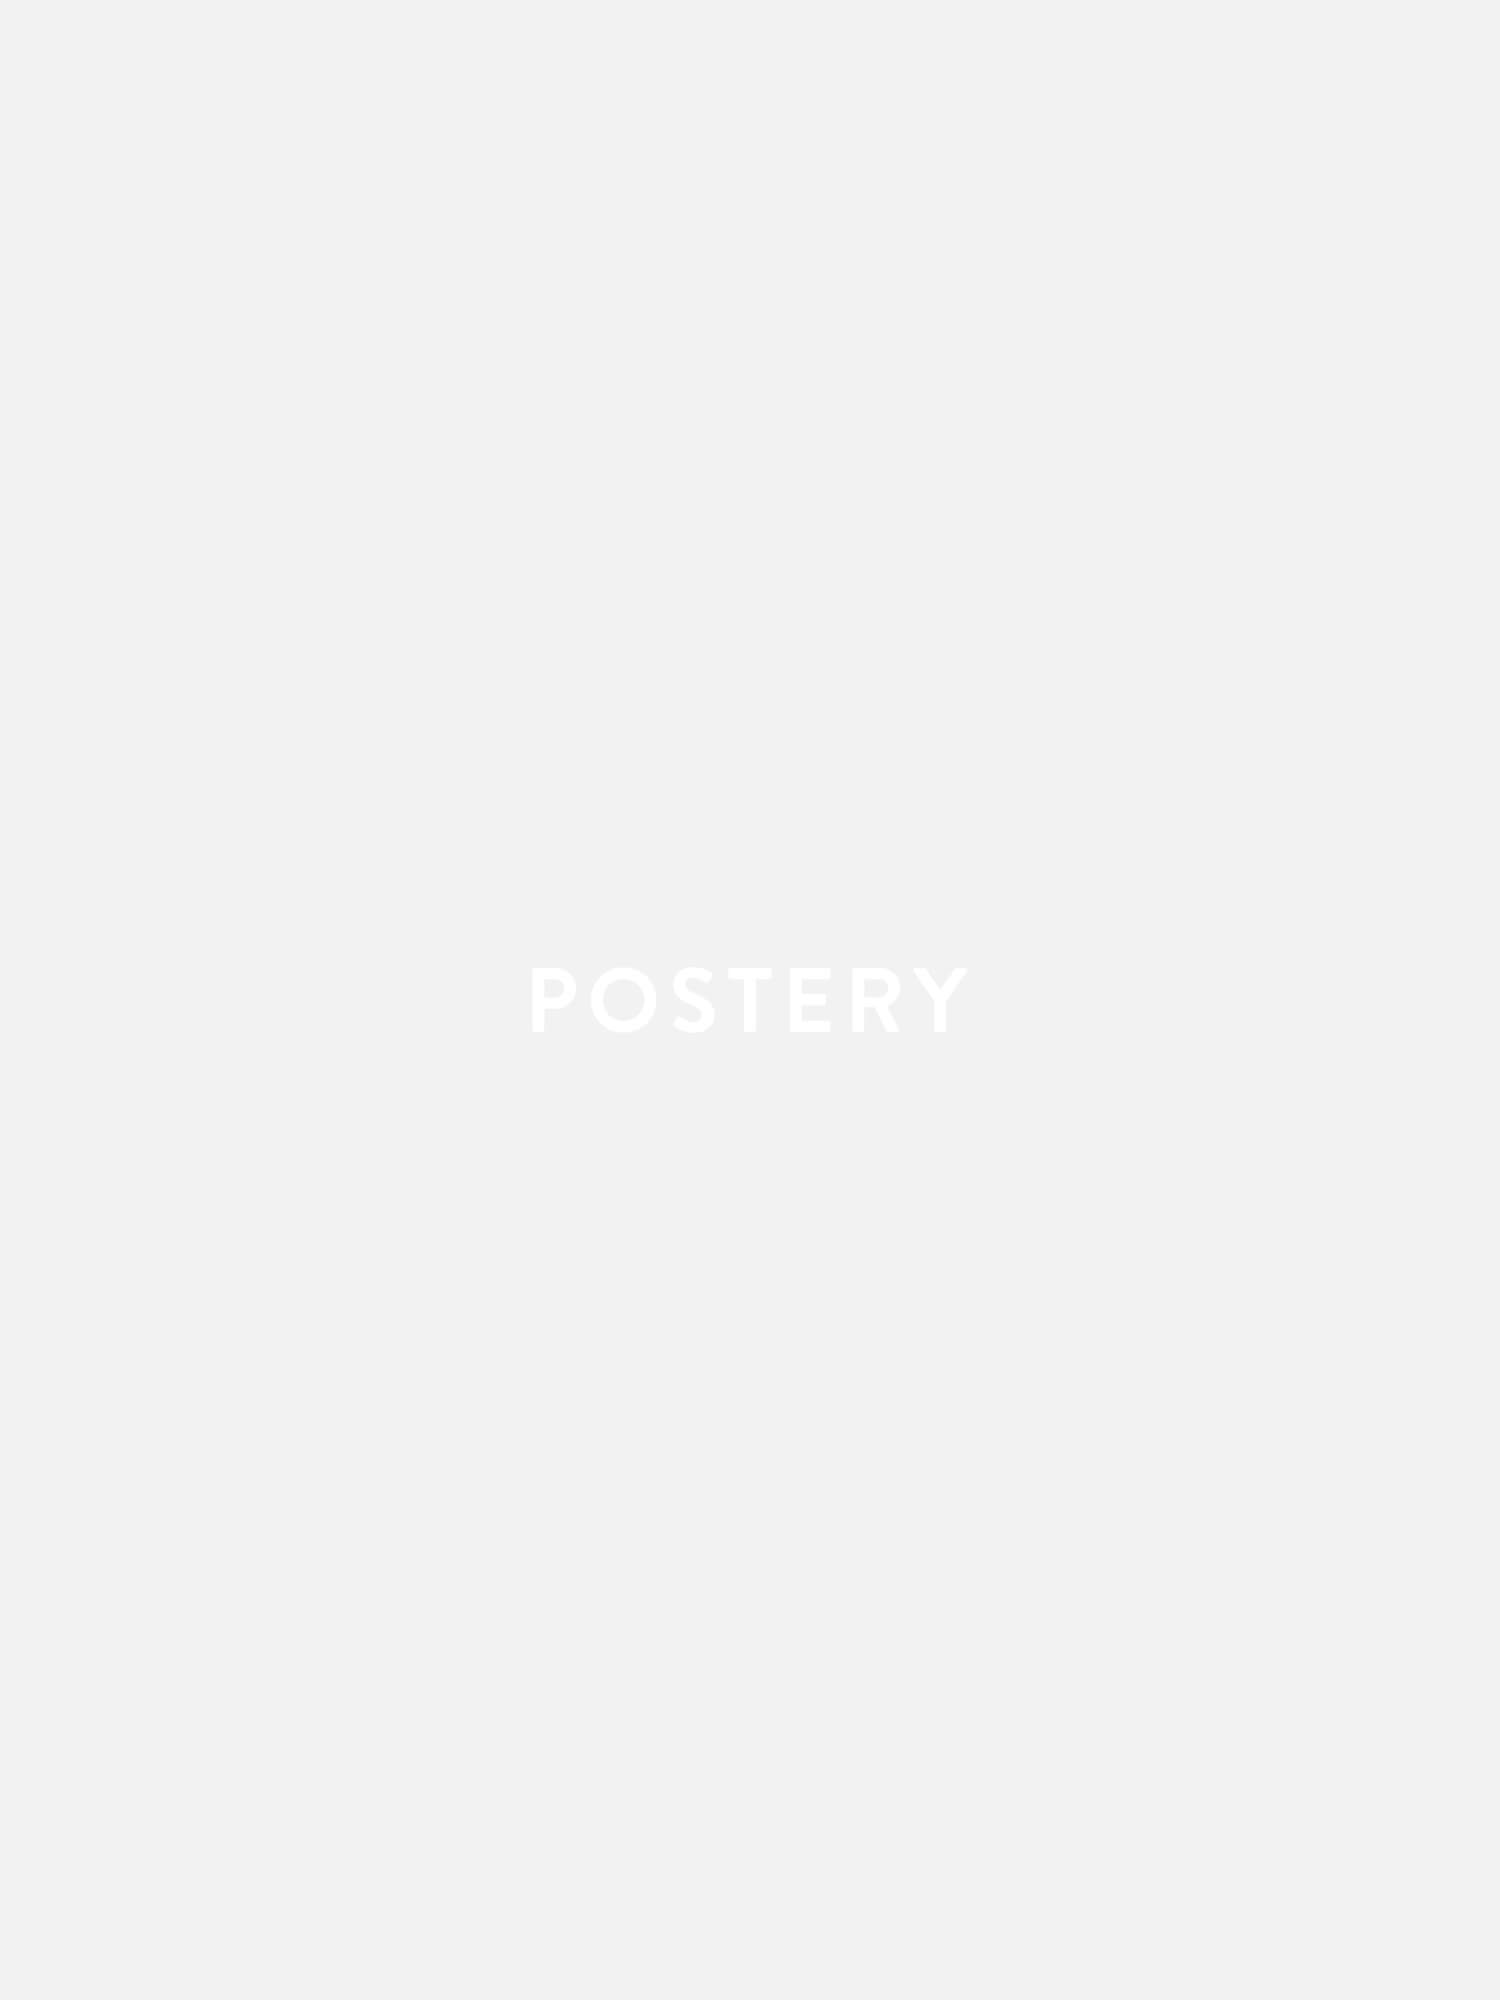 Bear on Bike Poster